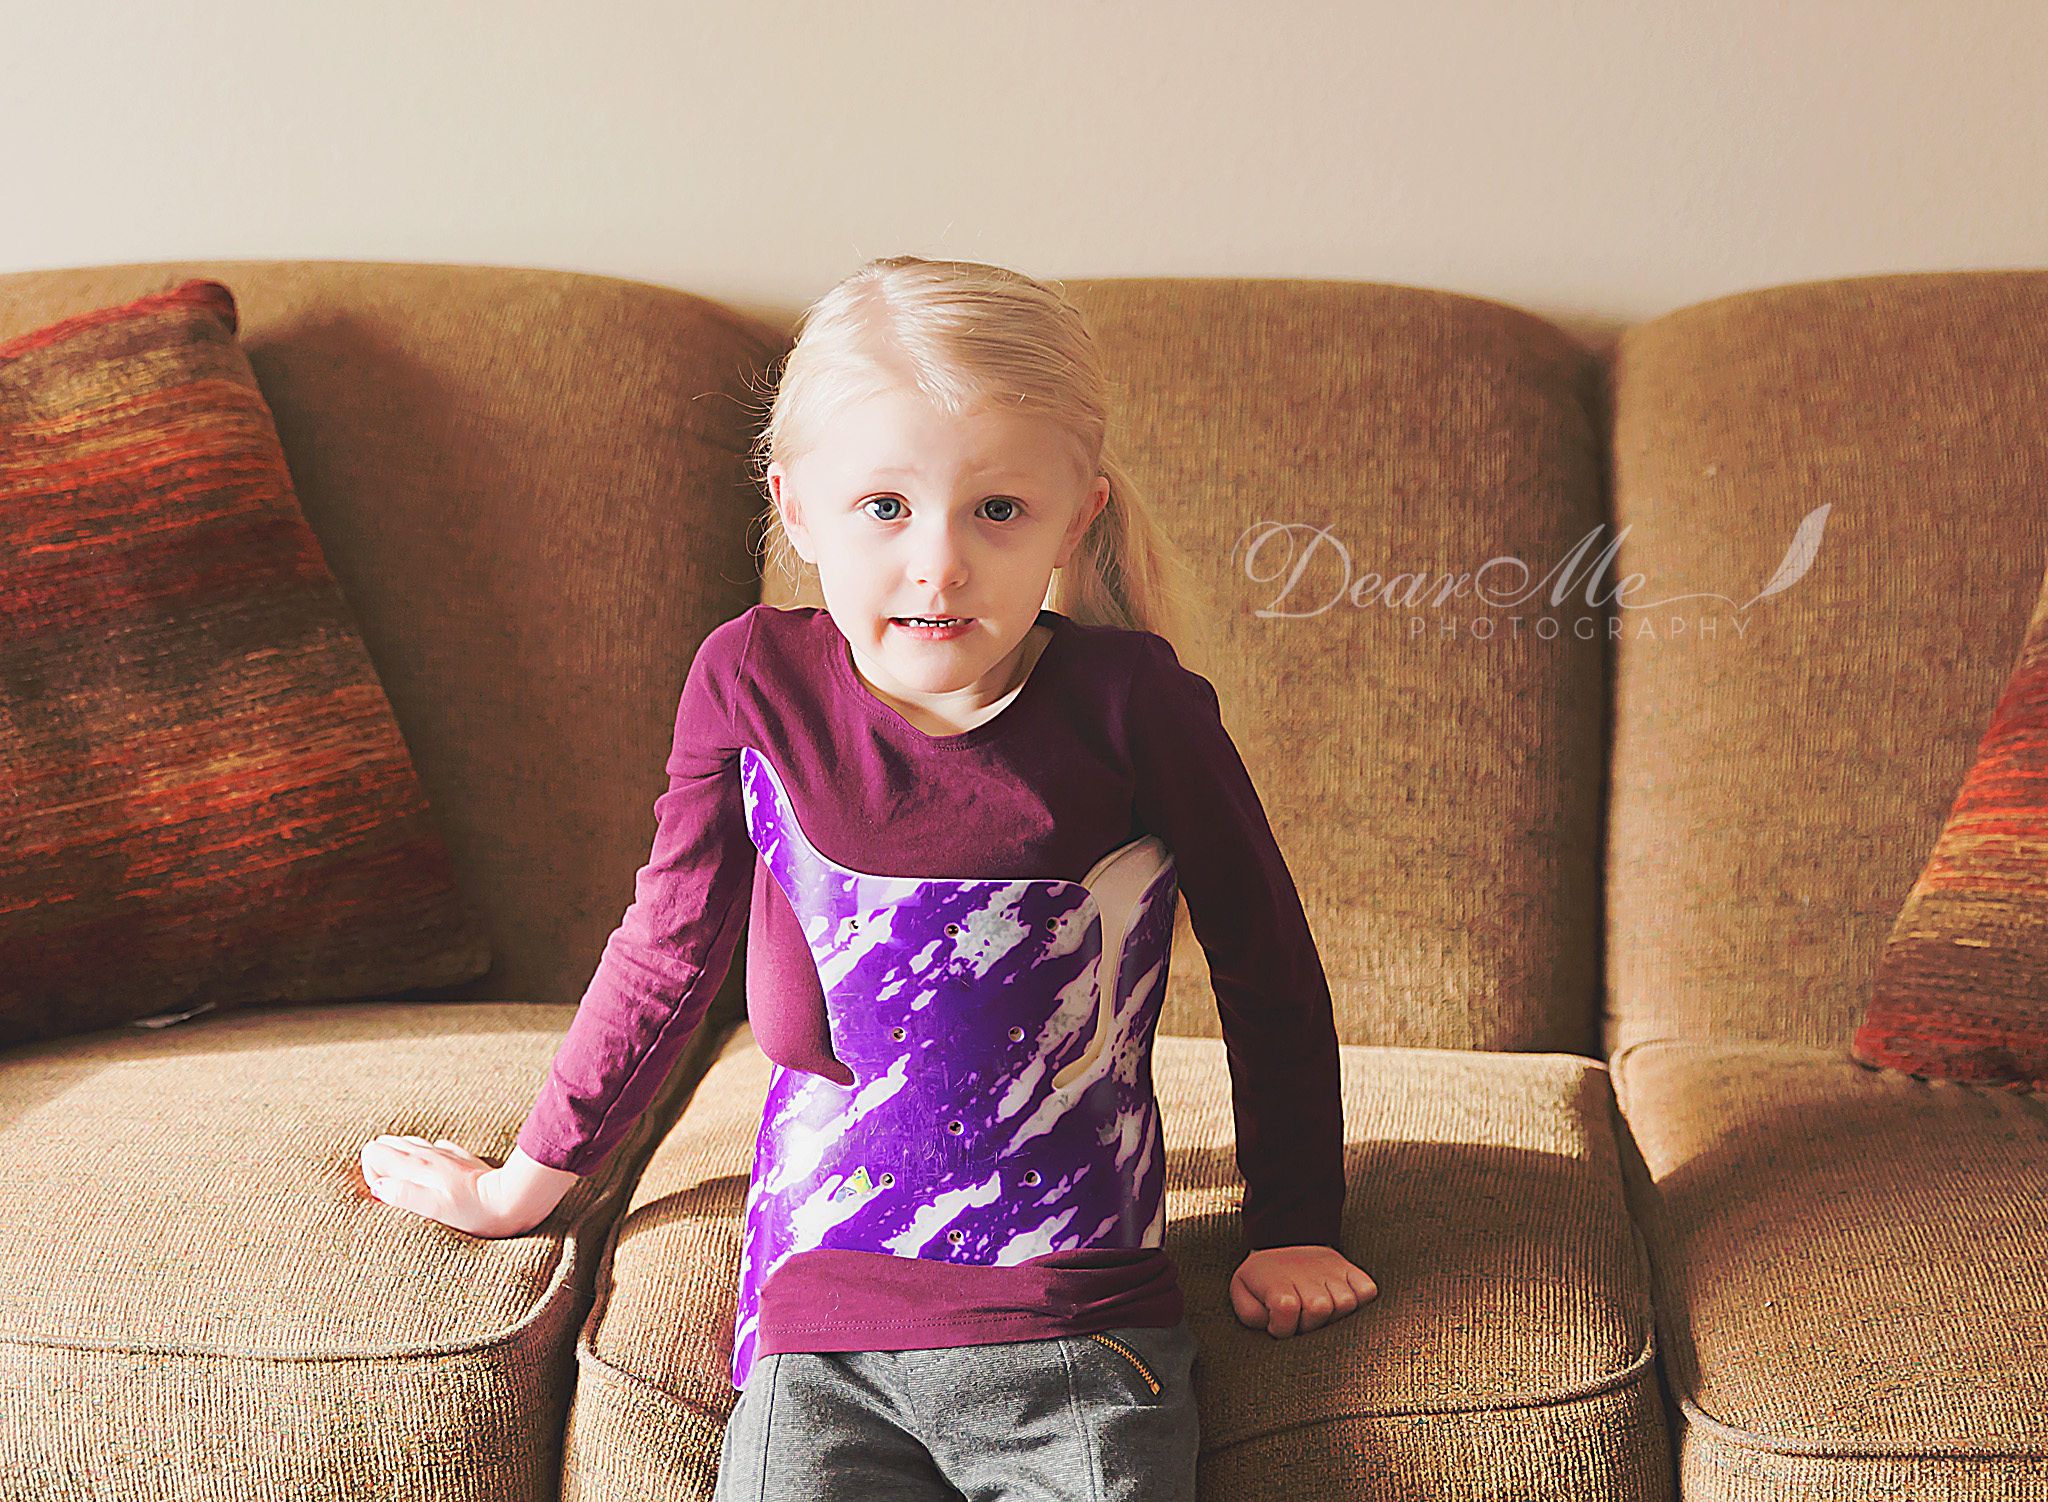 dear me photography mandan photographer girl sitting on brown couch with purple long sleeve shirt